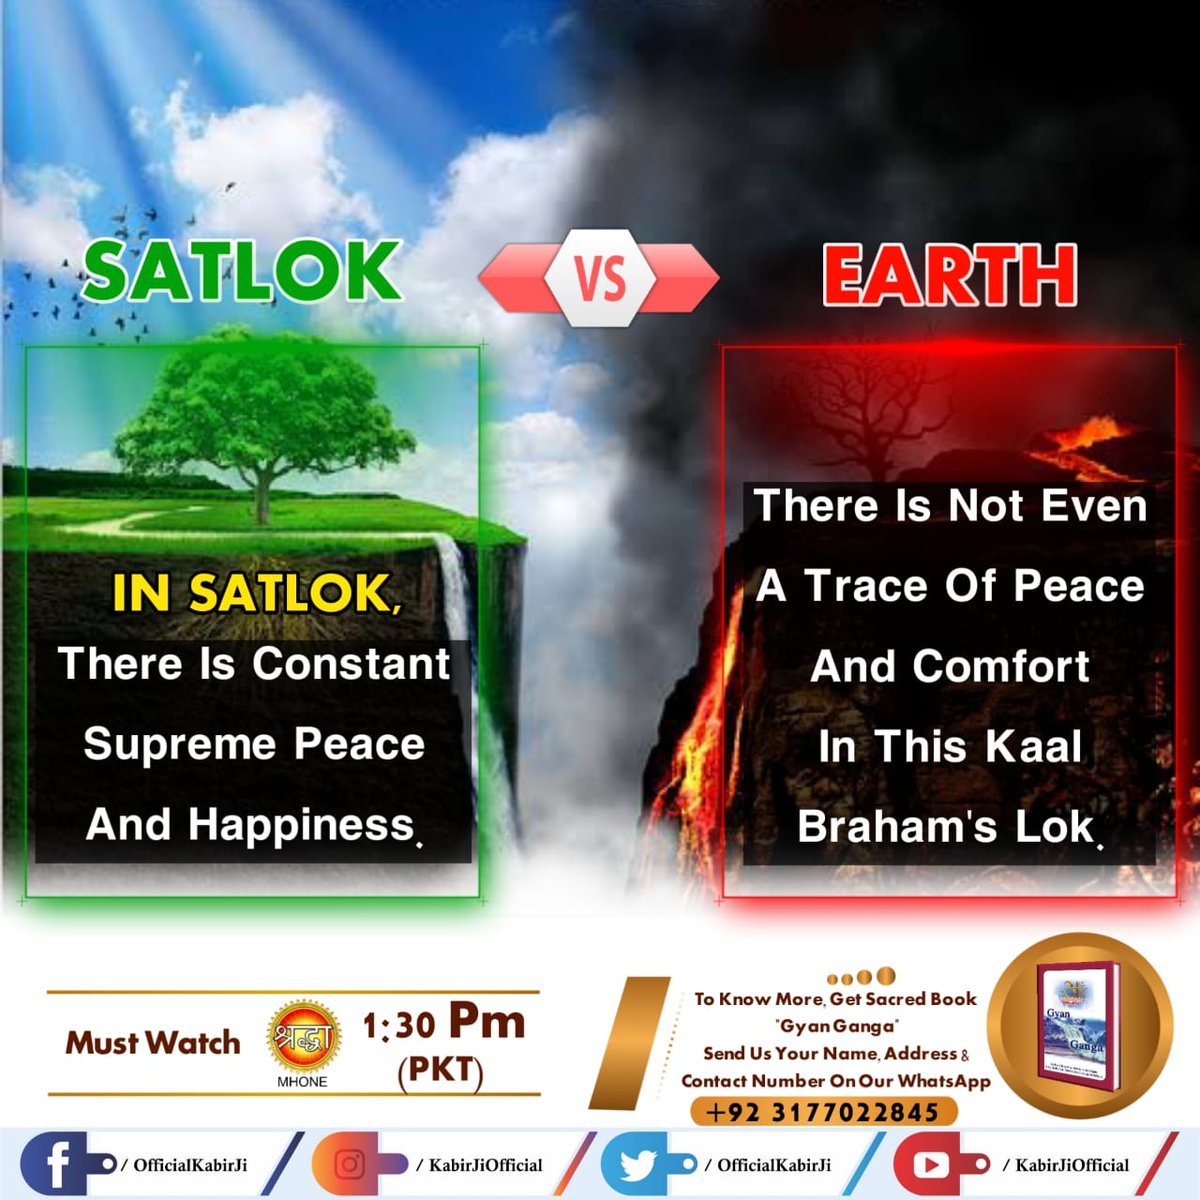 In Satlok, there is constant supreme peace and happiness.   There is not even a trace of peace and comfort in this Kaal Brahm's lok. - Saint Rampal Ji Maharaj #GodMorningSaturday #saturdaythoughts